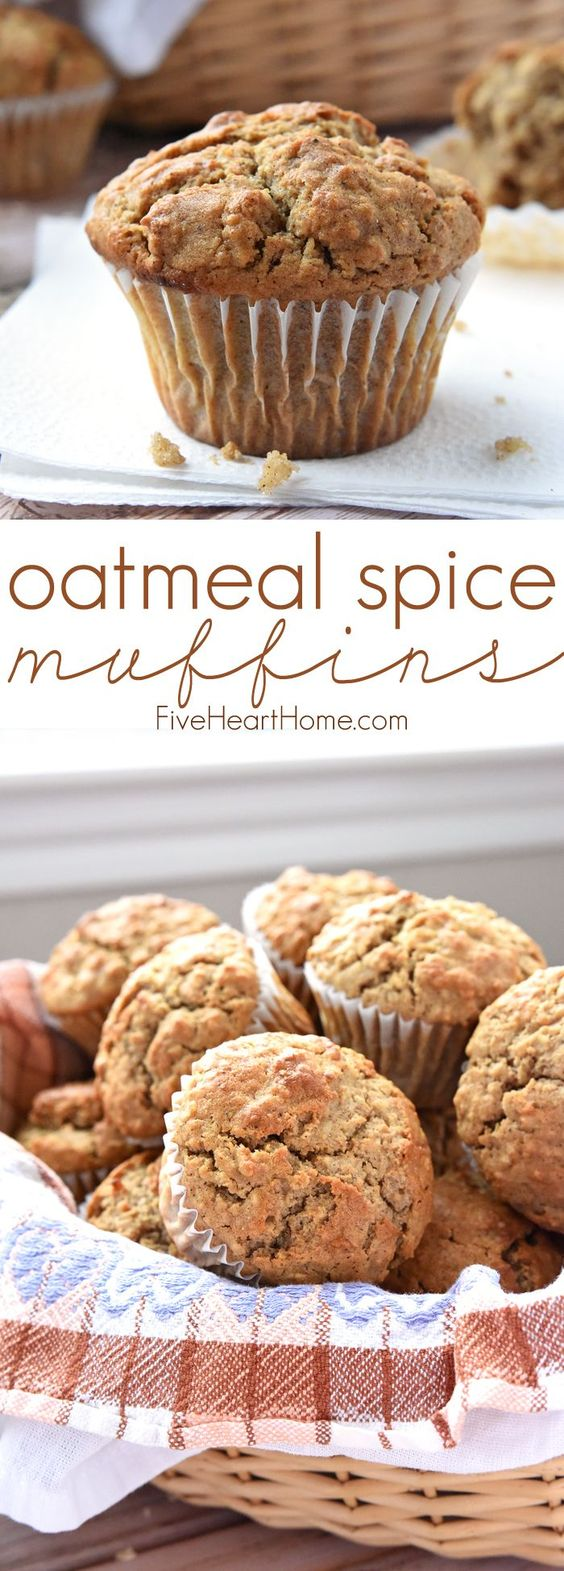 Oatmeal Spice Muffins from Five Heart Home. These are delicious! I halved the recipe and got 32 mini muffins. Baked for 10 minutes. Used 1/4 cup butter and 1/4 cup coconut oil. Also added in 1 Tbsp ground flaxseed with the dry ingredients and needed to add an extra Tbsp of milk. Next time I will use half as much nutmeg as it was a little strong.